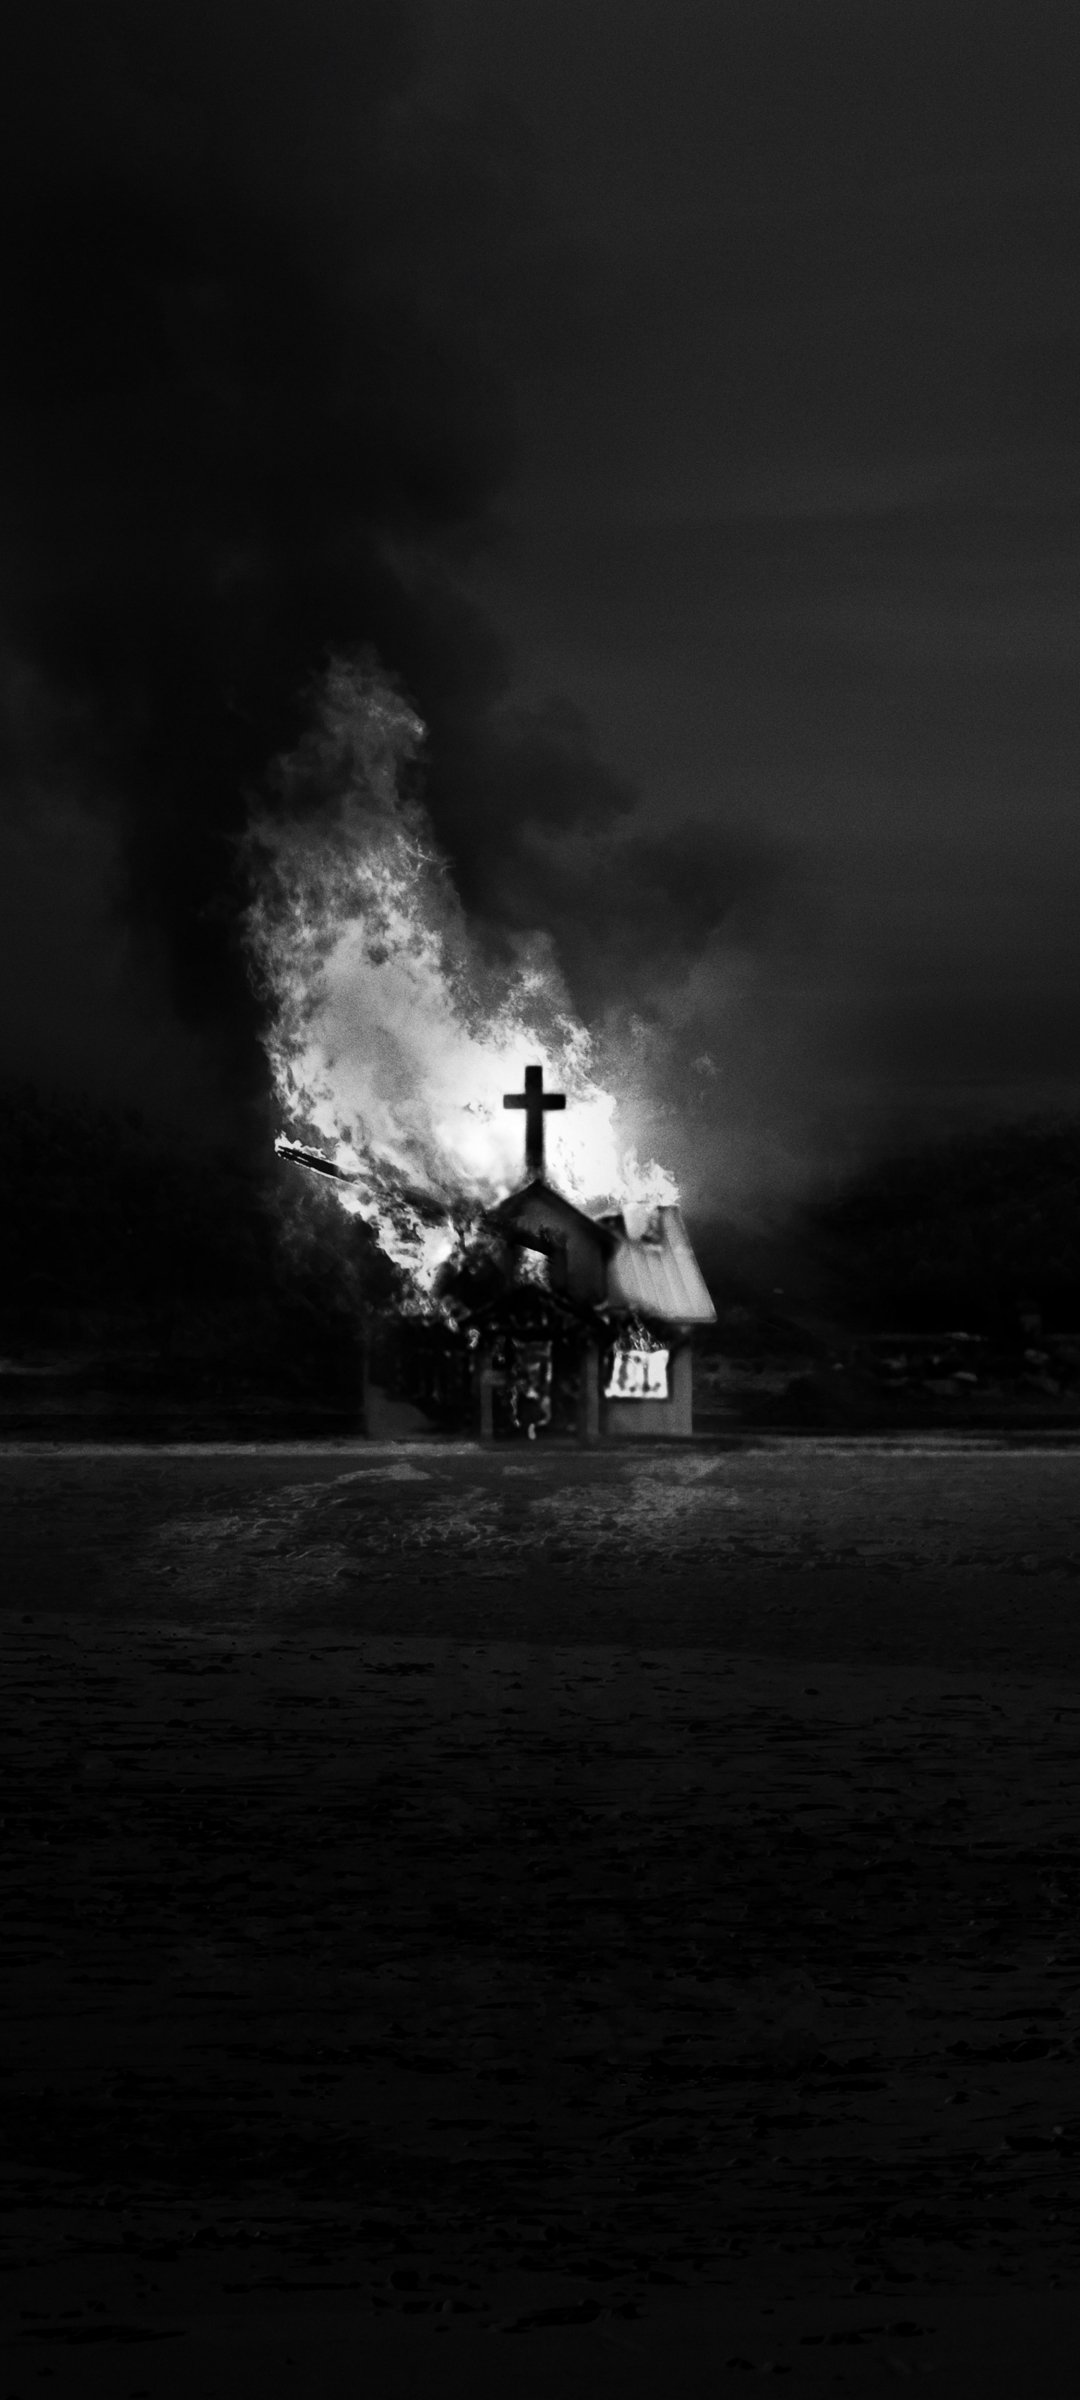 1080x2400 Lords of Chaos 2019 1080x2400 Resolution Wallpaper HD 1080x2400